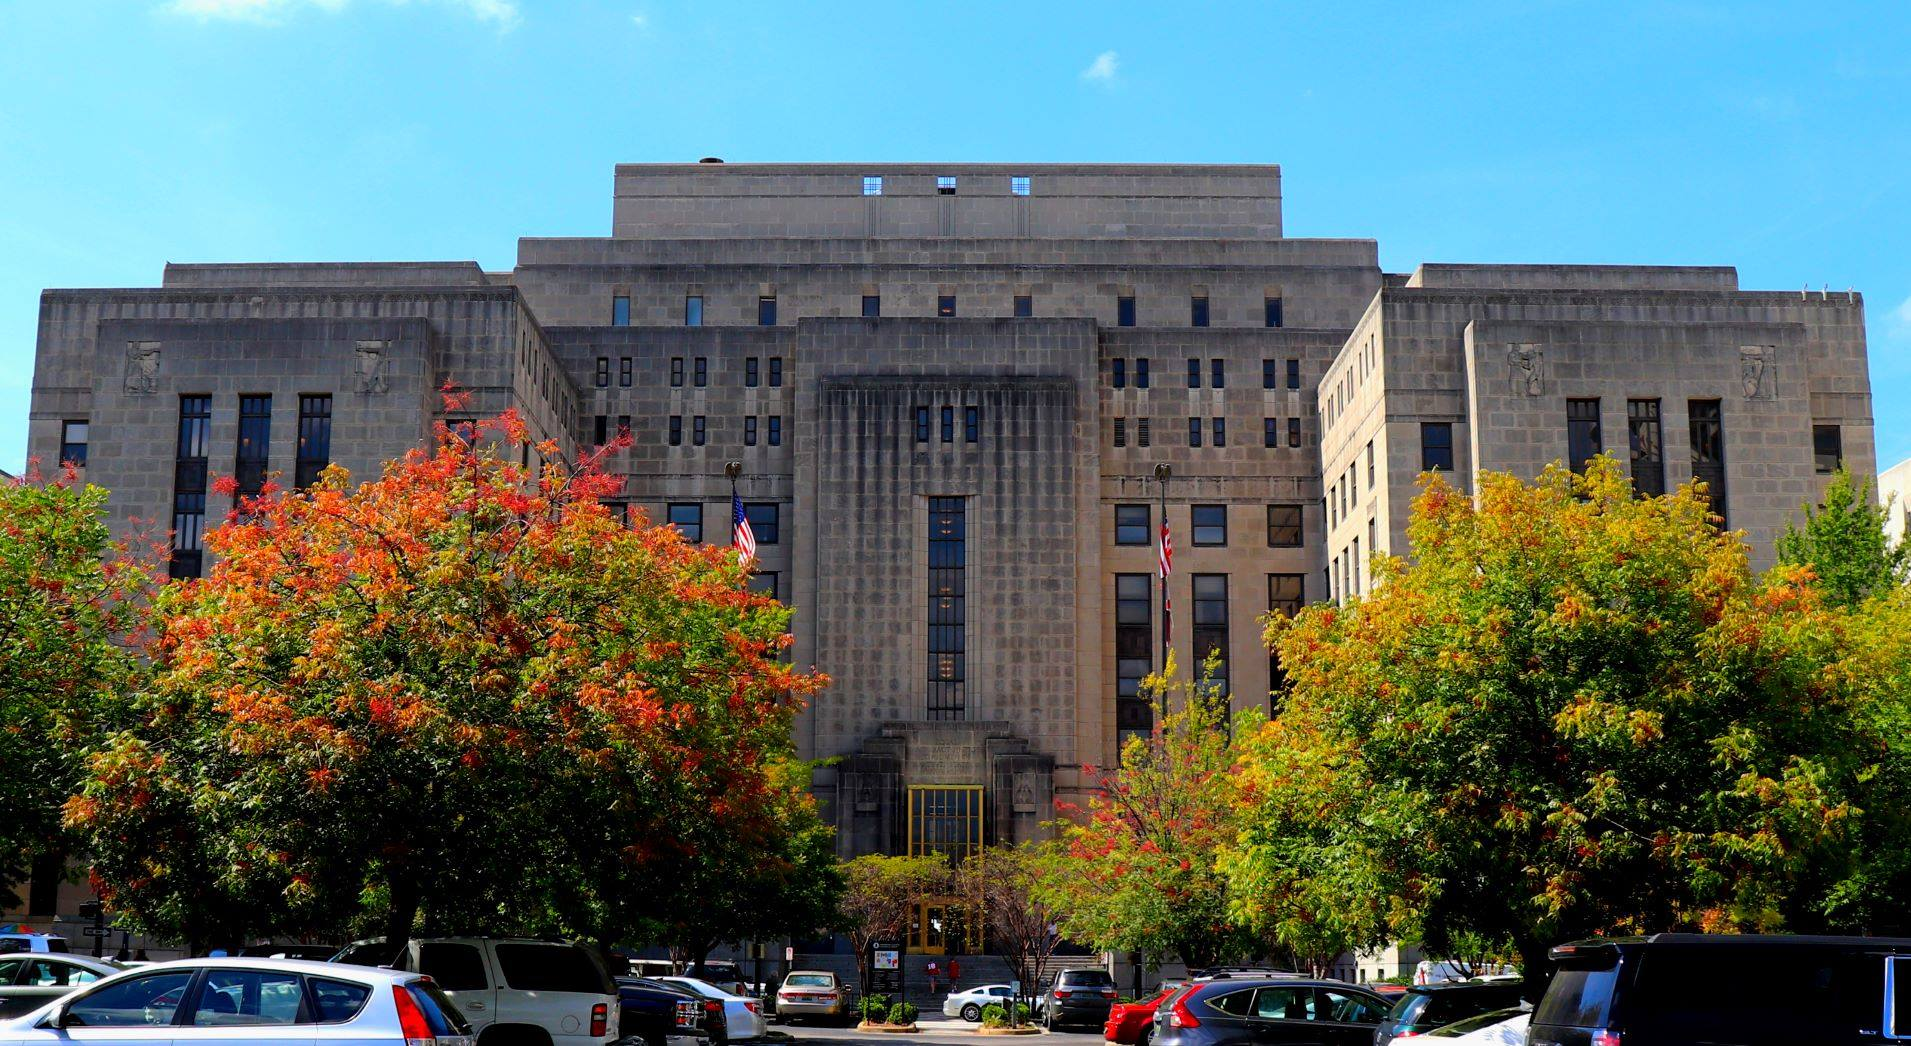 BREAKING: Jefferson County courthouses and facilities to remain closed through April 30